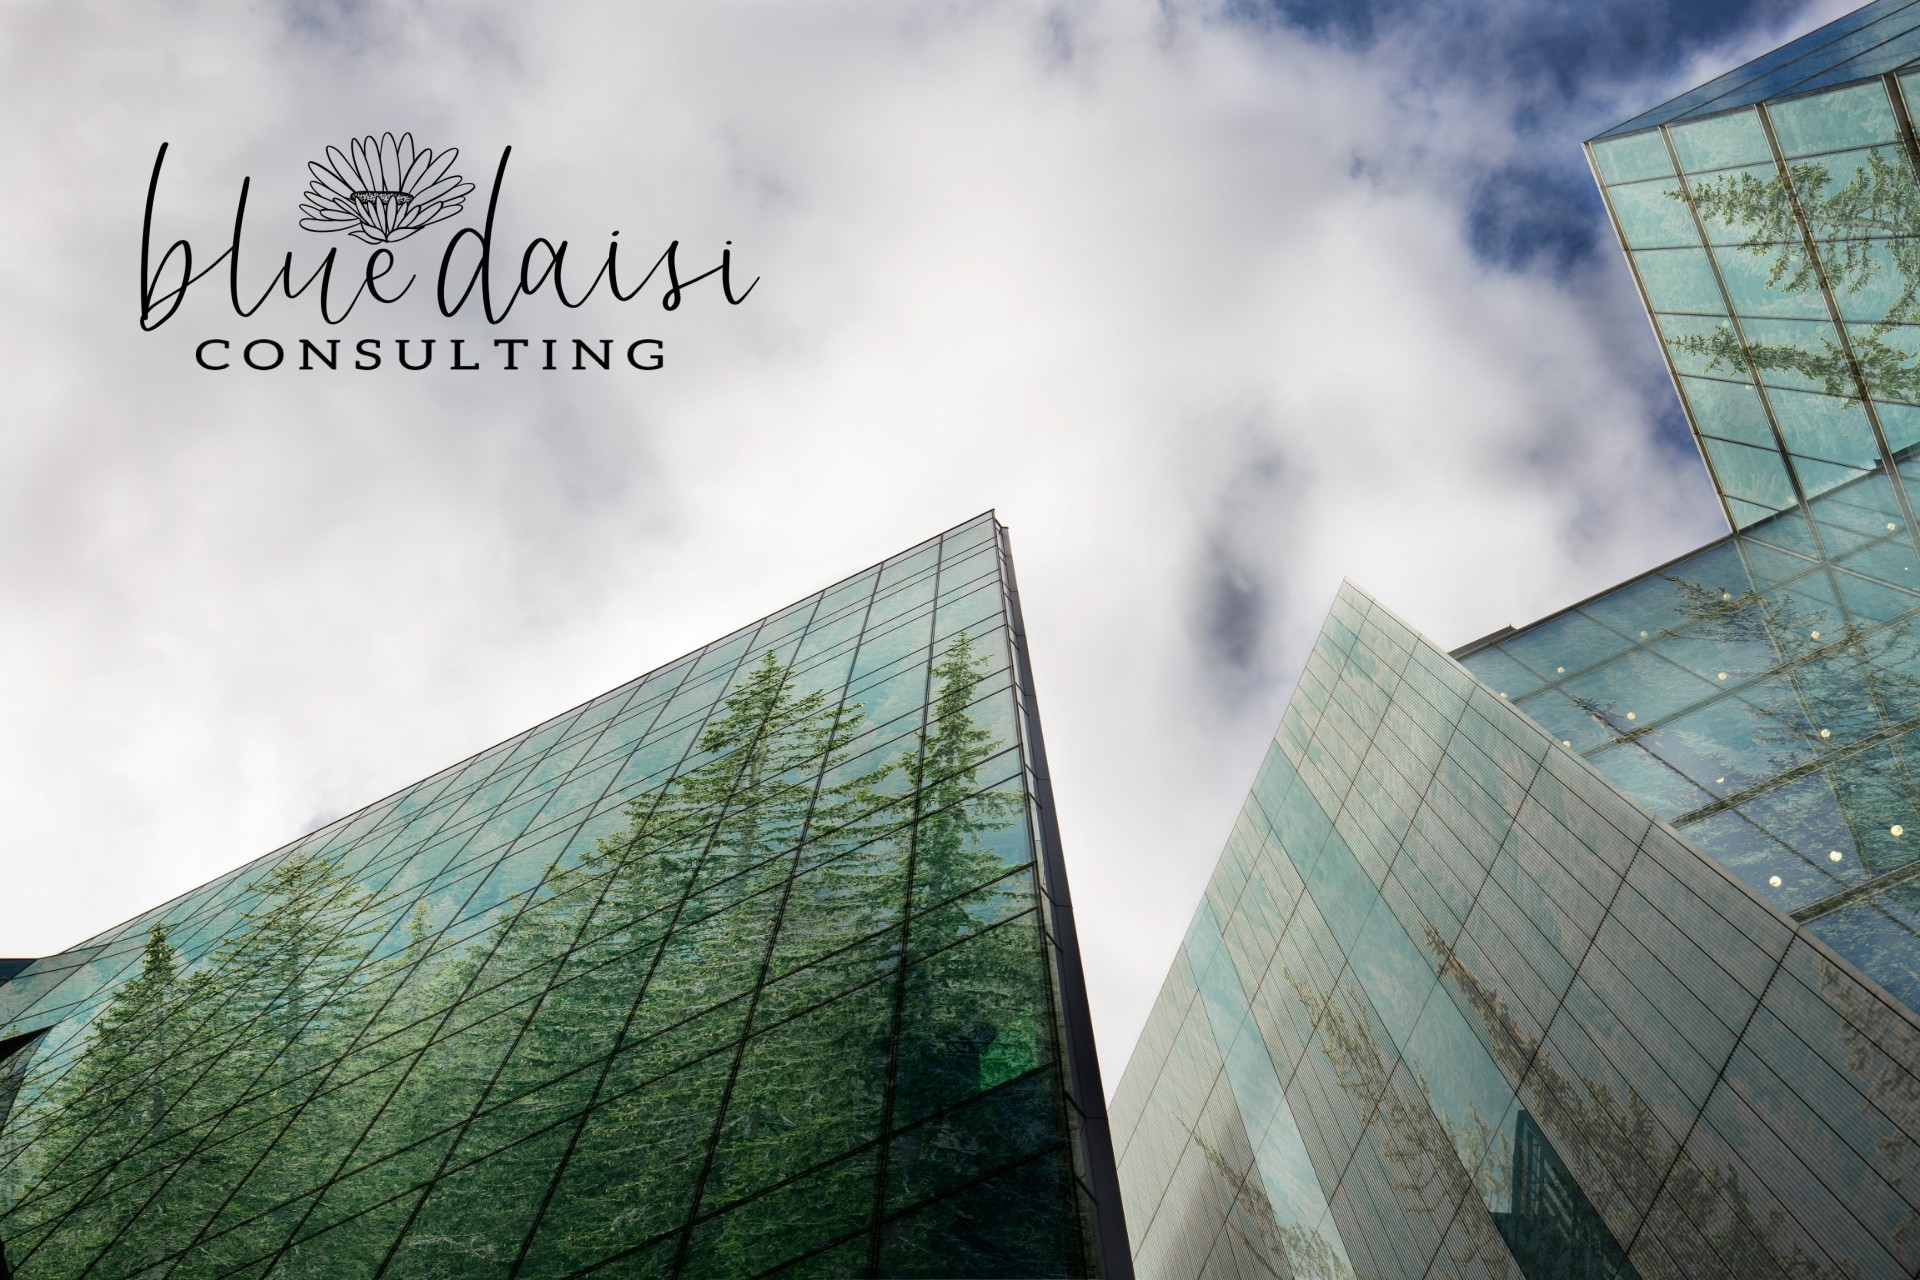 Blue Daisi Consulting